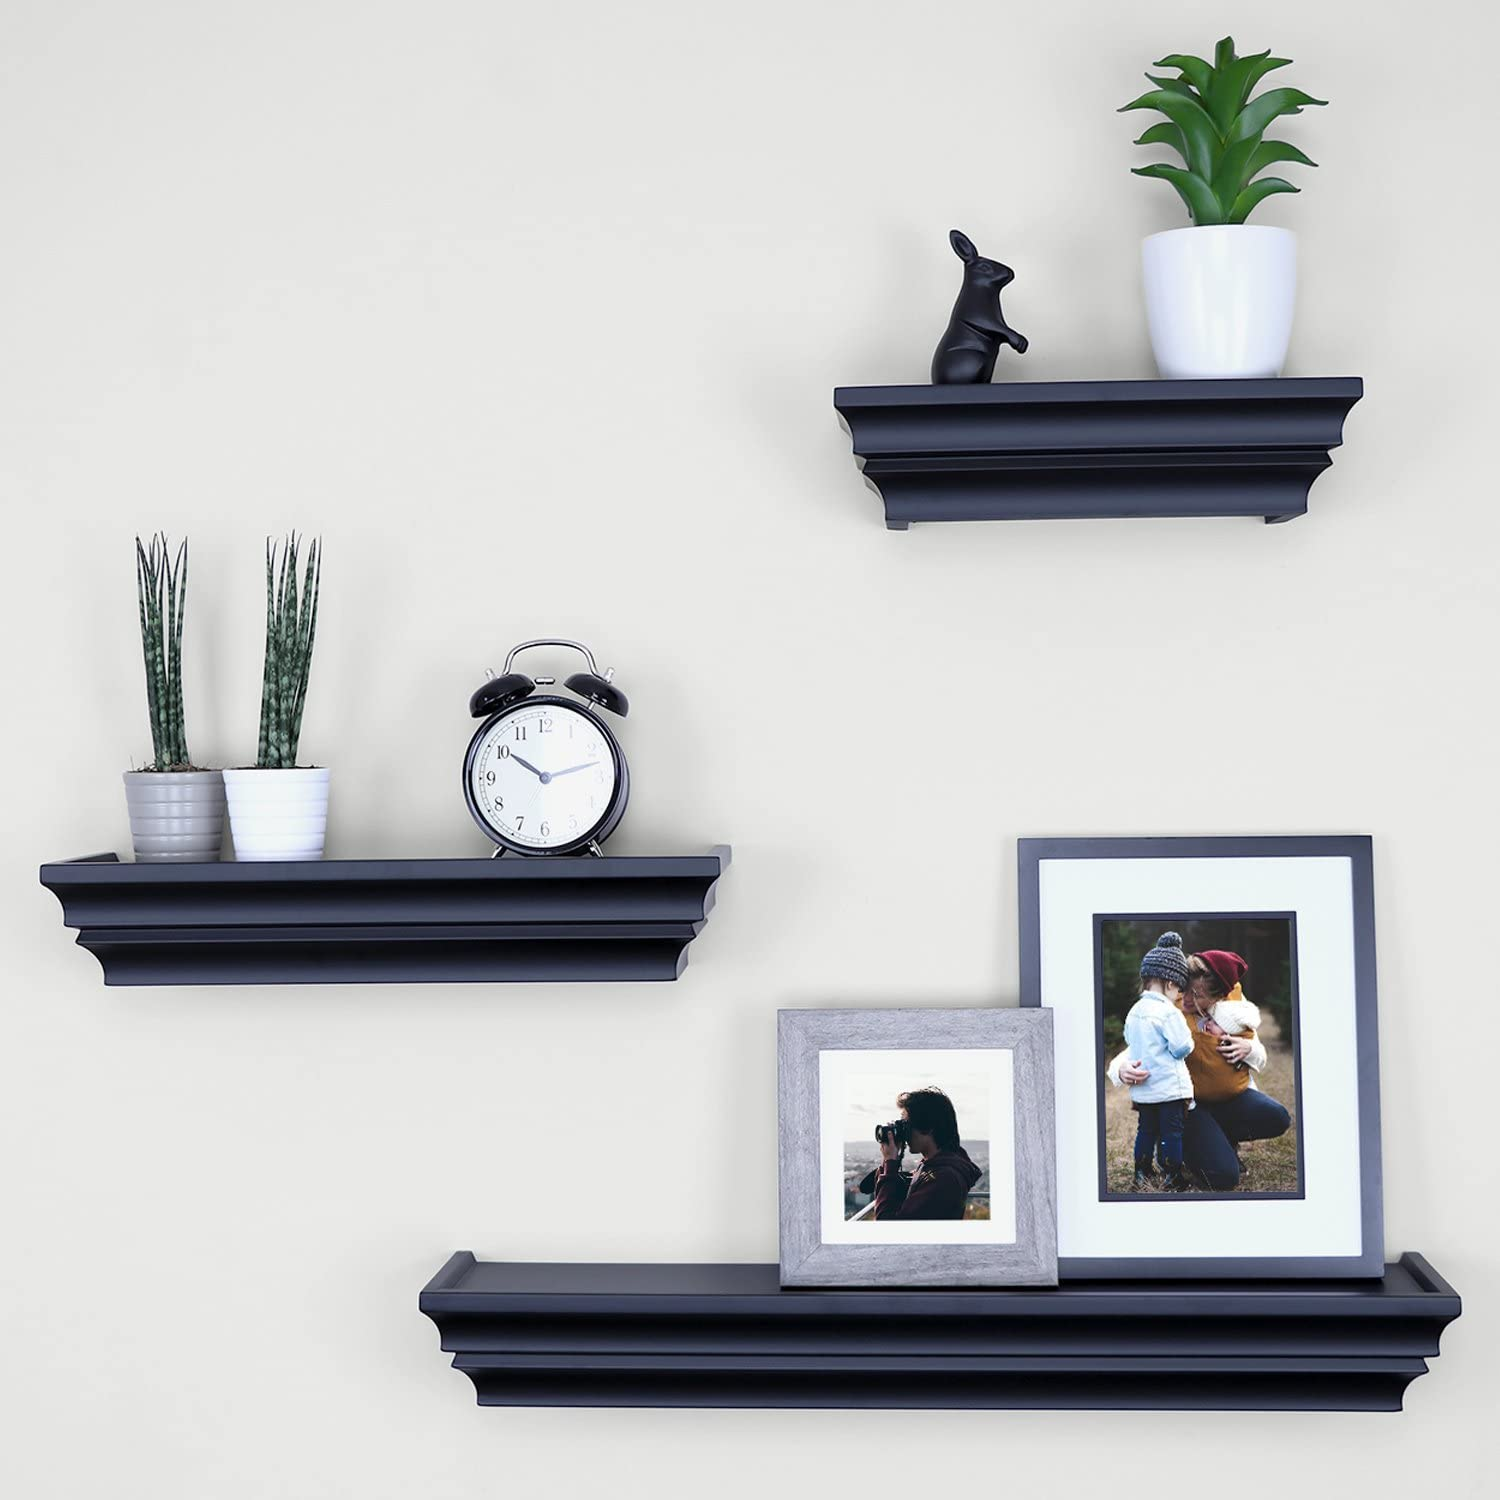 "Ballucci Victorian Wall Ledge and Shelf, 12"", 16"", 24"", Set of 3, Black"